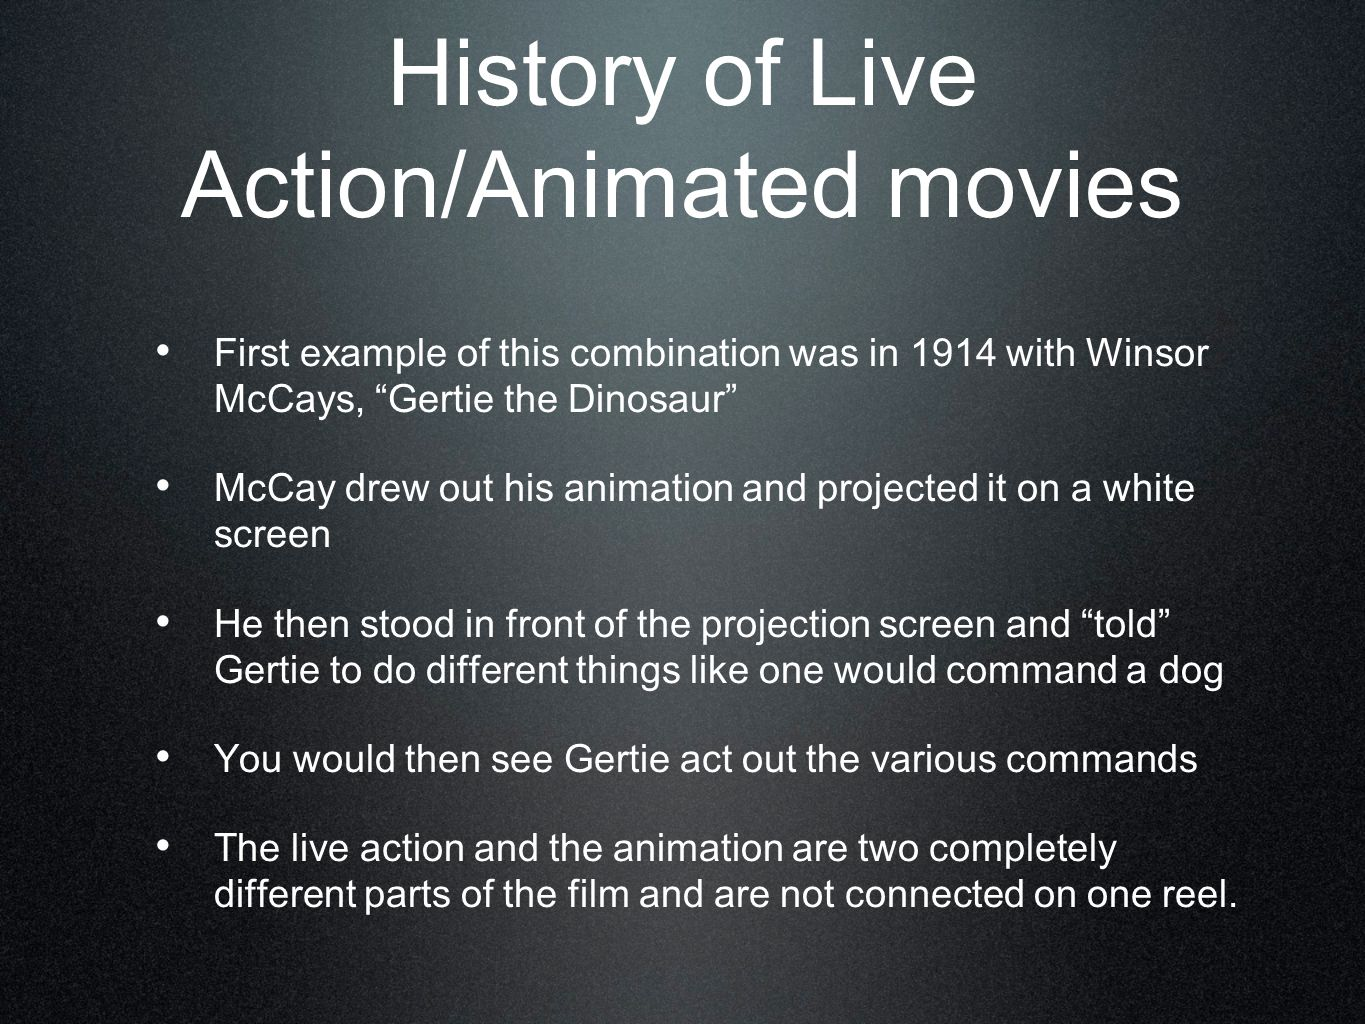 History of Live Action/Animated movies First example of this combination was in 1914 with Winsor McCays, Gertie the Dinosaur McCay drew out his animation and projected it on a white screen He then stood in front of the projection screen and told Gertie to do different things like one would command a dog You would then see Gertie act out the various commands The live action and the animation are two completely different parts of the film and are not connected on one reel.